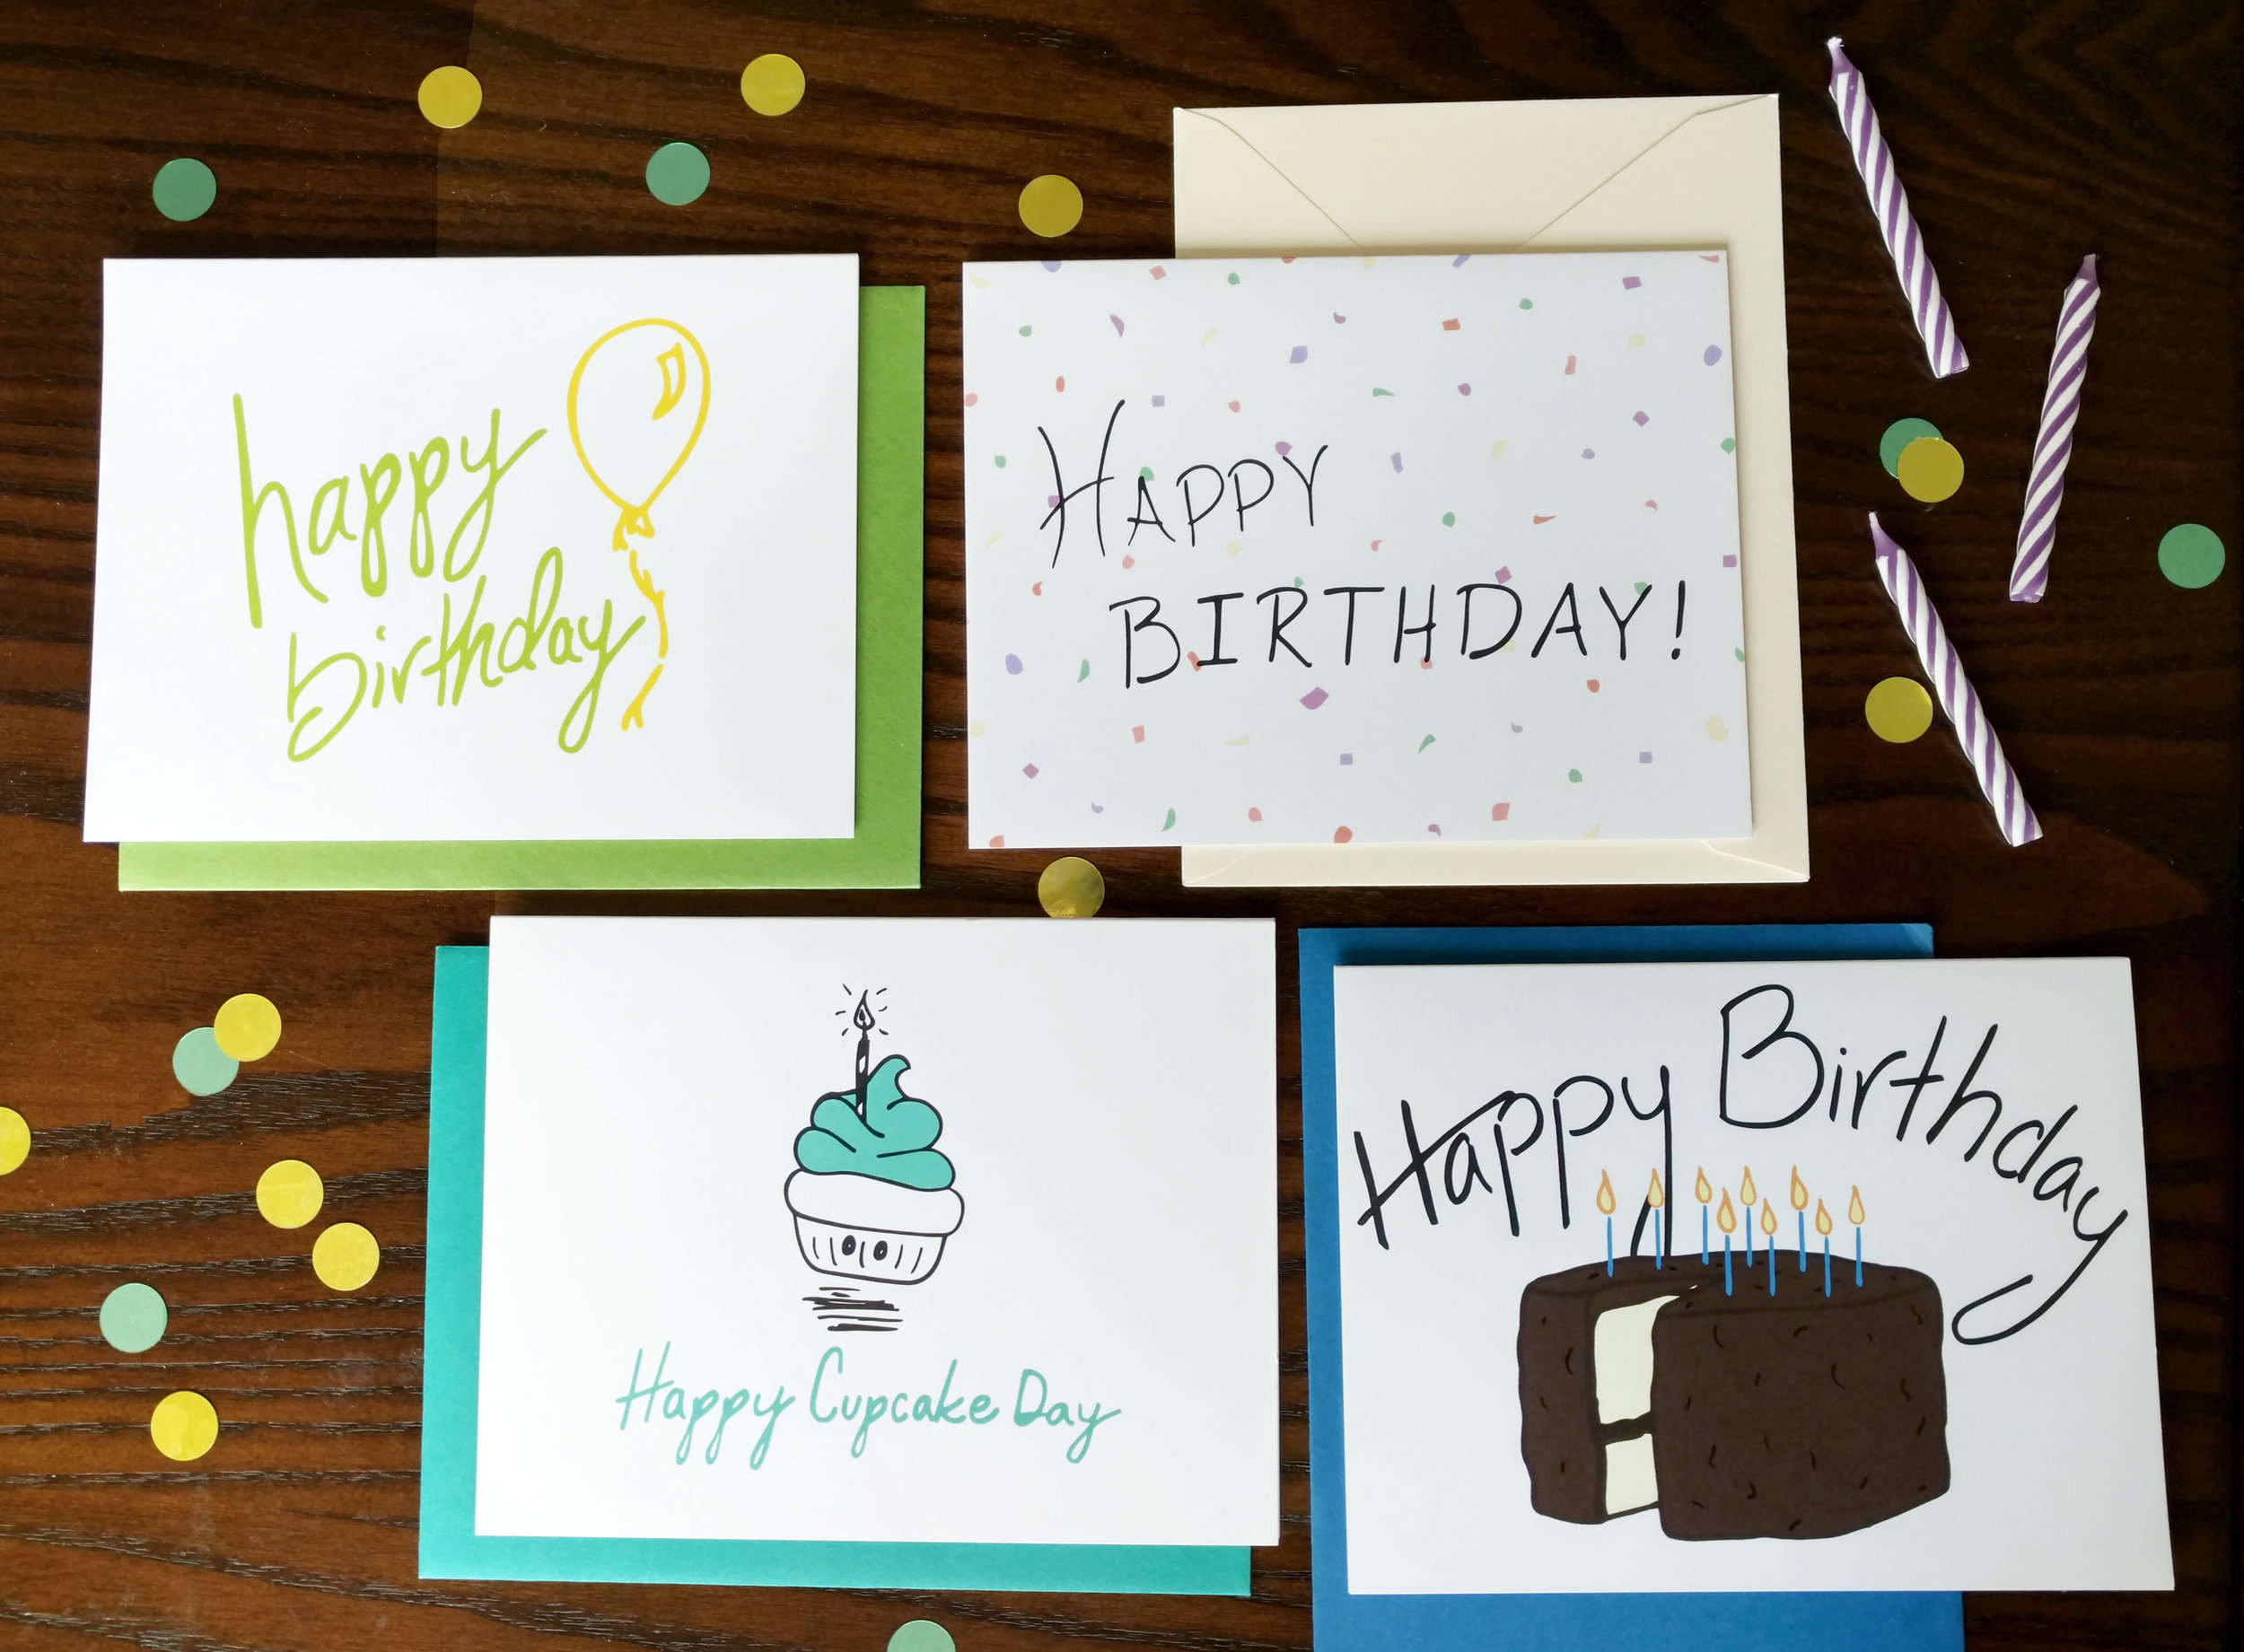 Meekly-Yours-Birthday-Card-Collection.jpg